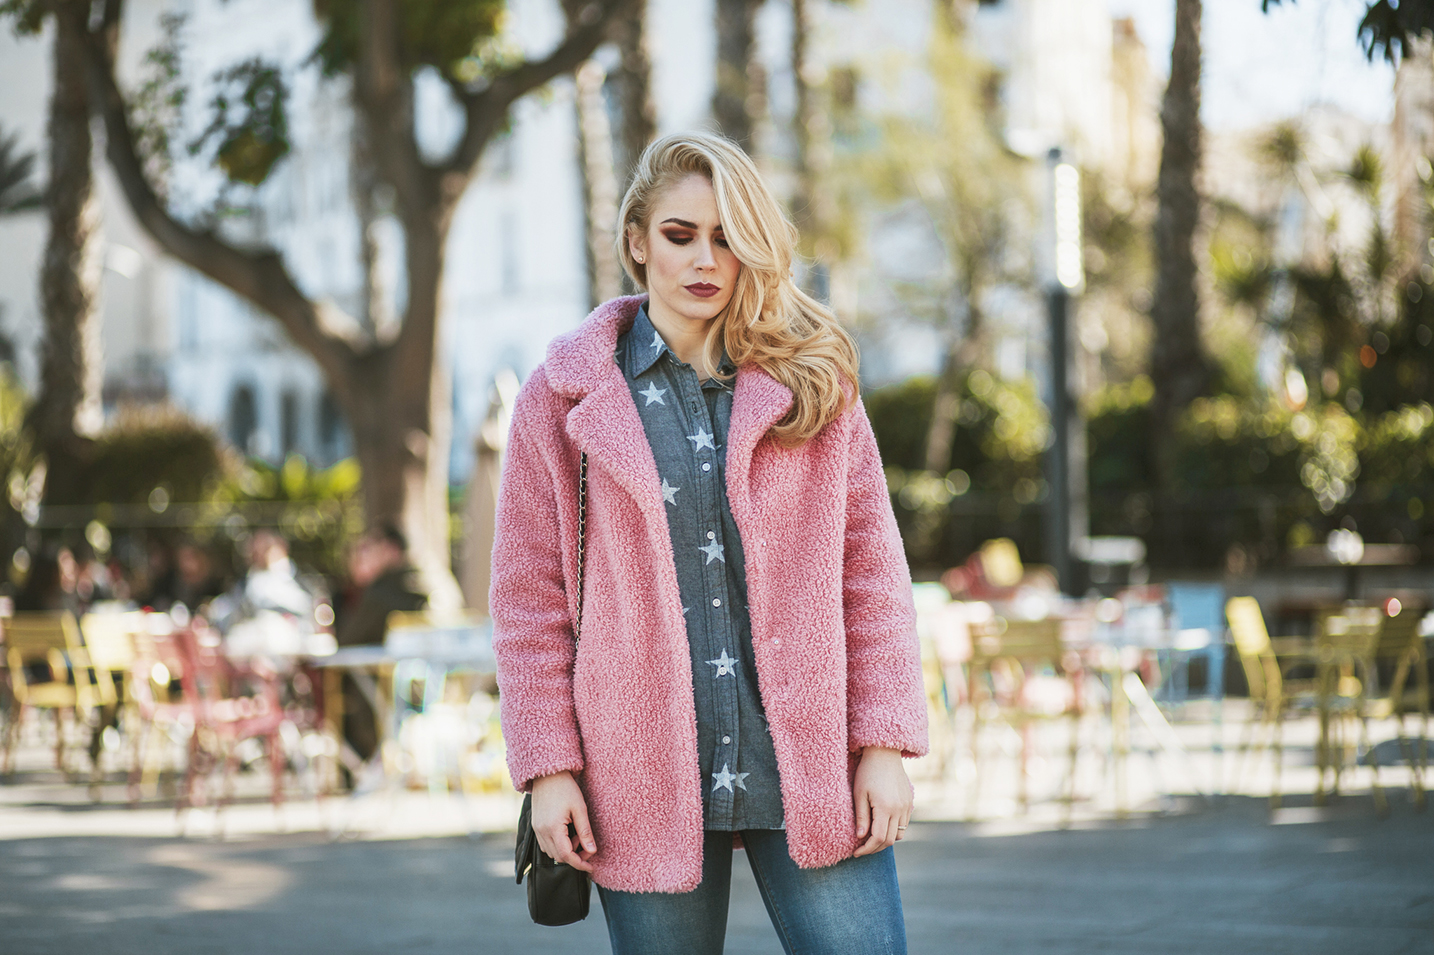 Patripaan with Ralph Lauren stars print denim shirt and Zara pink coat.